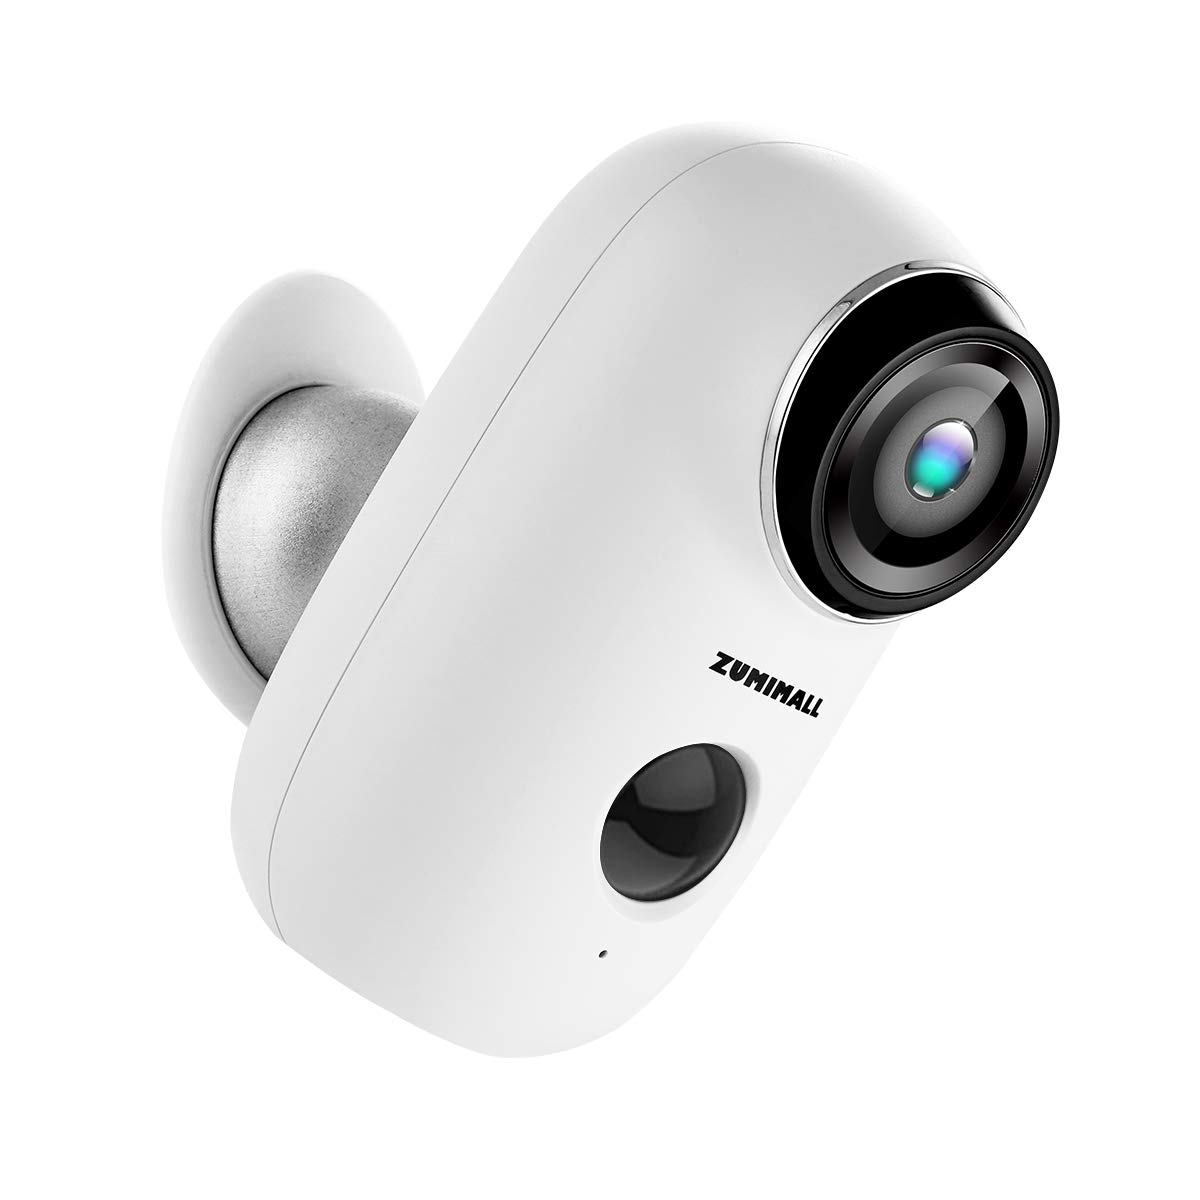 Wireless Rechargeable Battery Powered security Camera